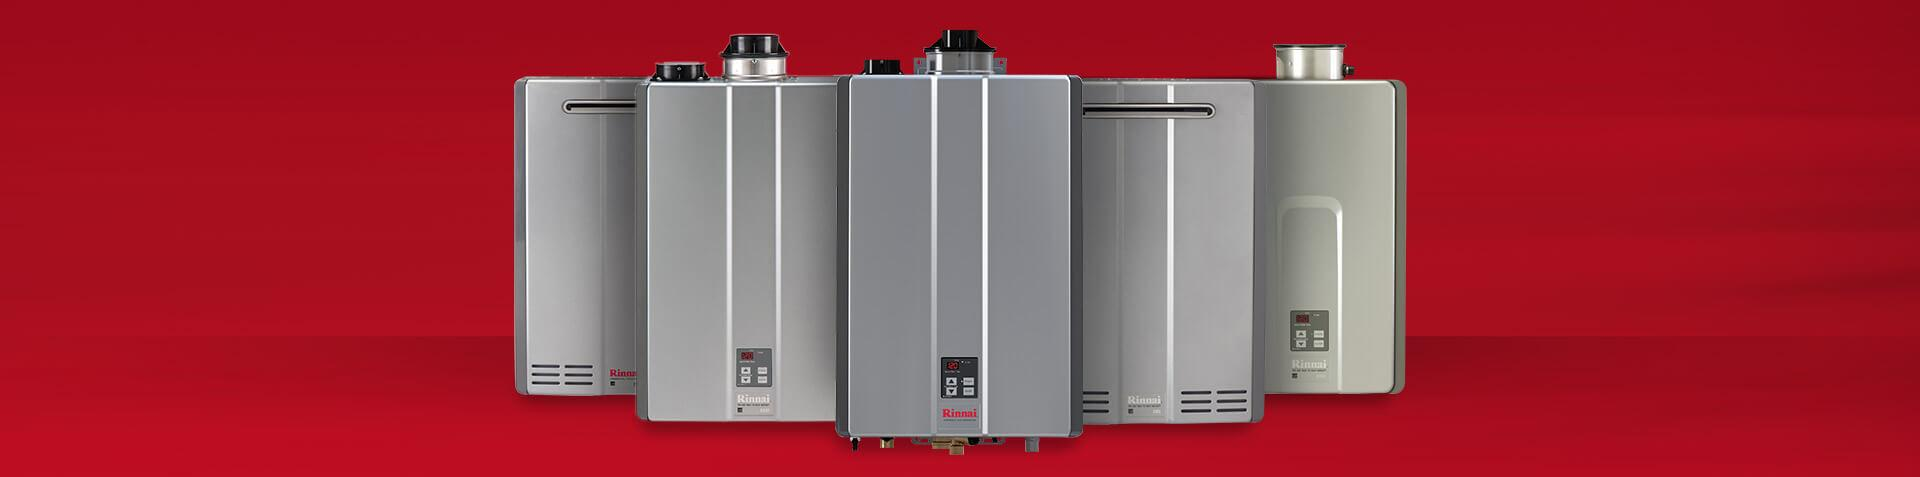 RELIABLE TANKLESS WATER HEATERS